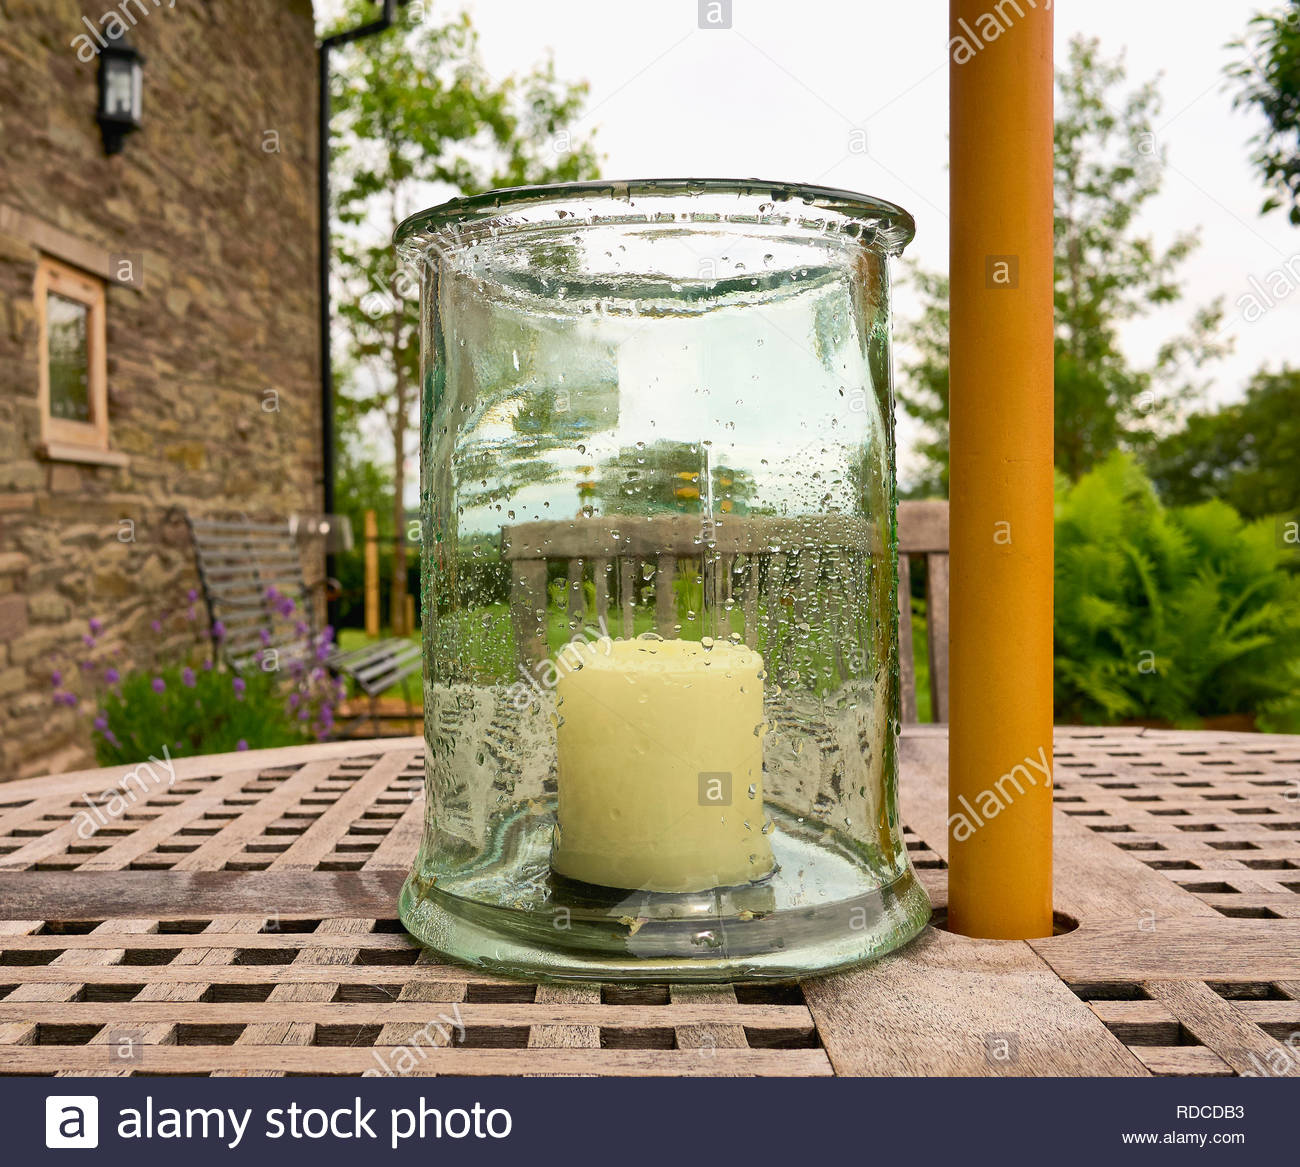 a large white unlit candle inside a glass jar covered with rain drops on a wooden patio table uk - Stock Image